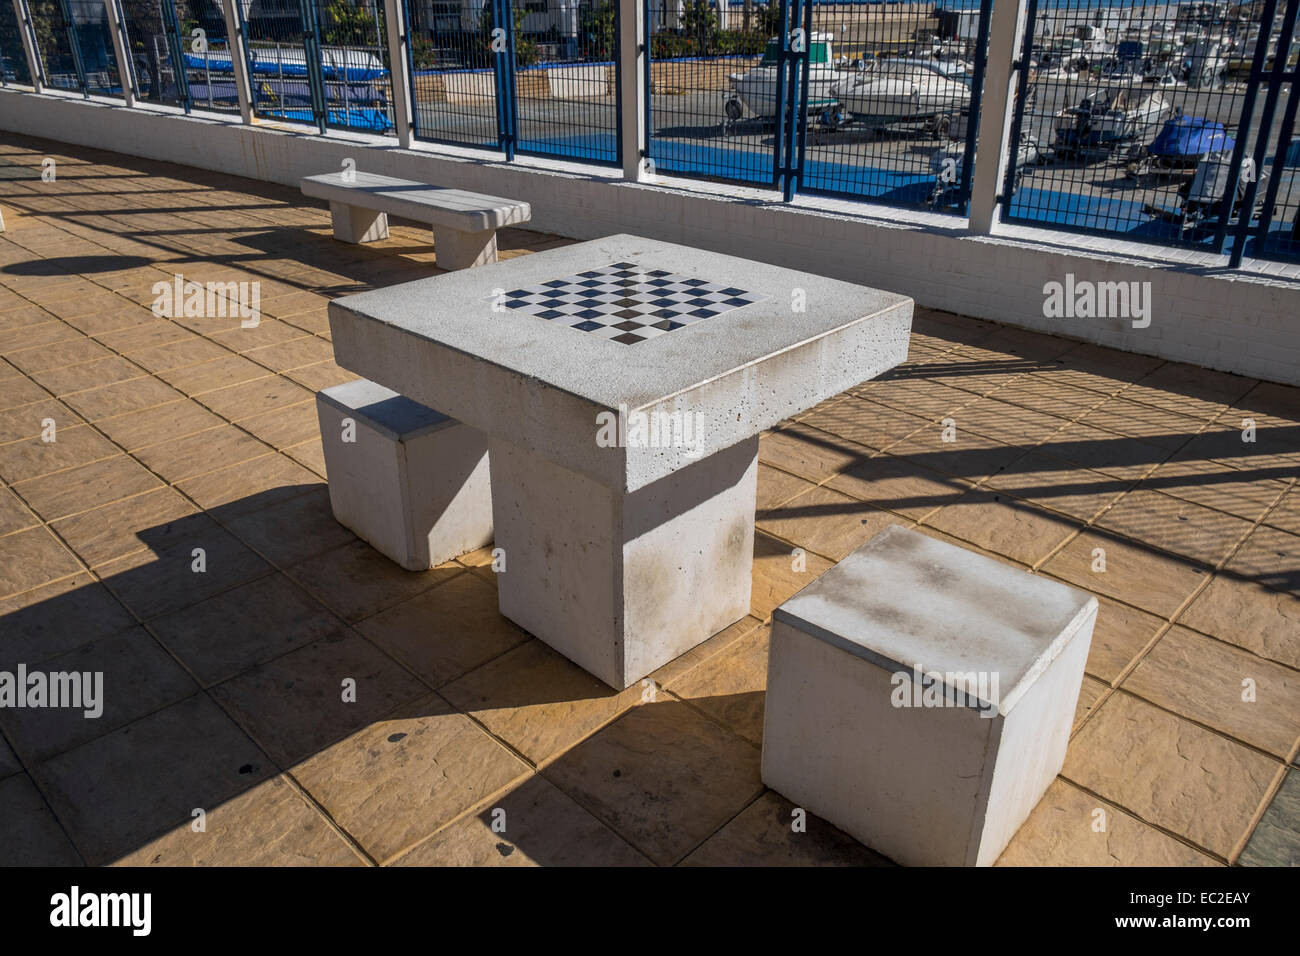 An Outside Stone Chess Table With Stone Seats For Two People   Stock Image